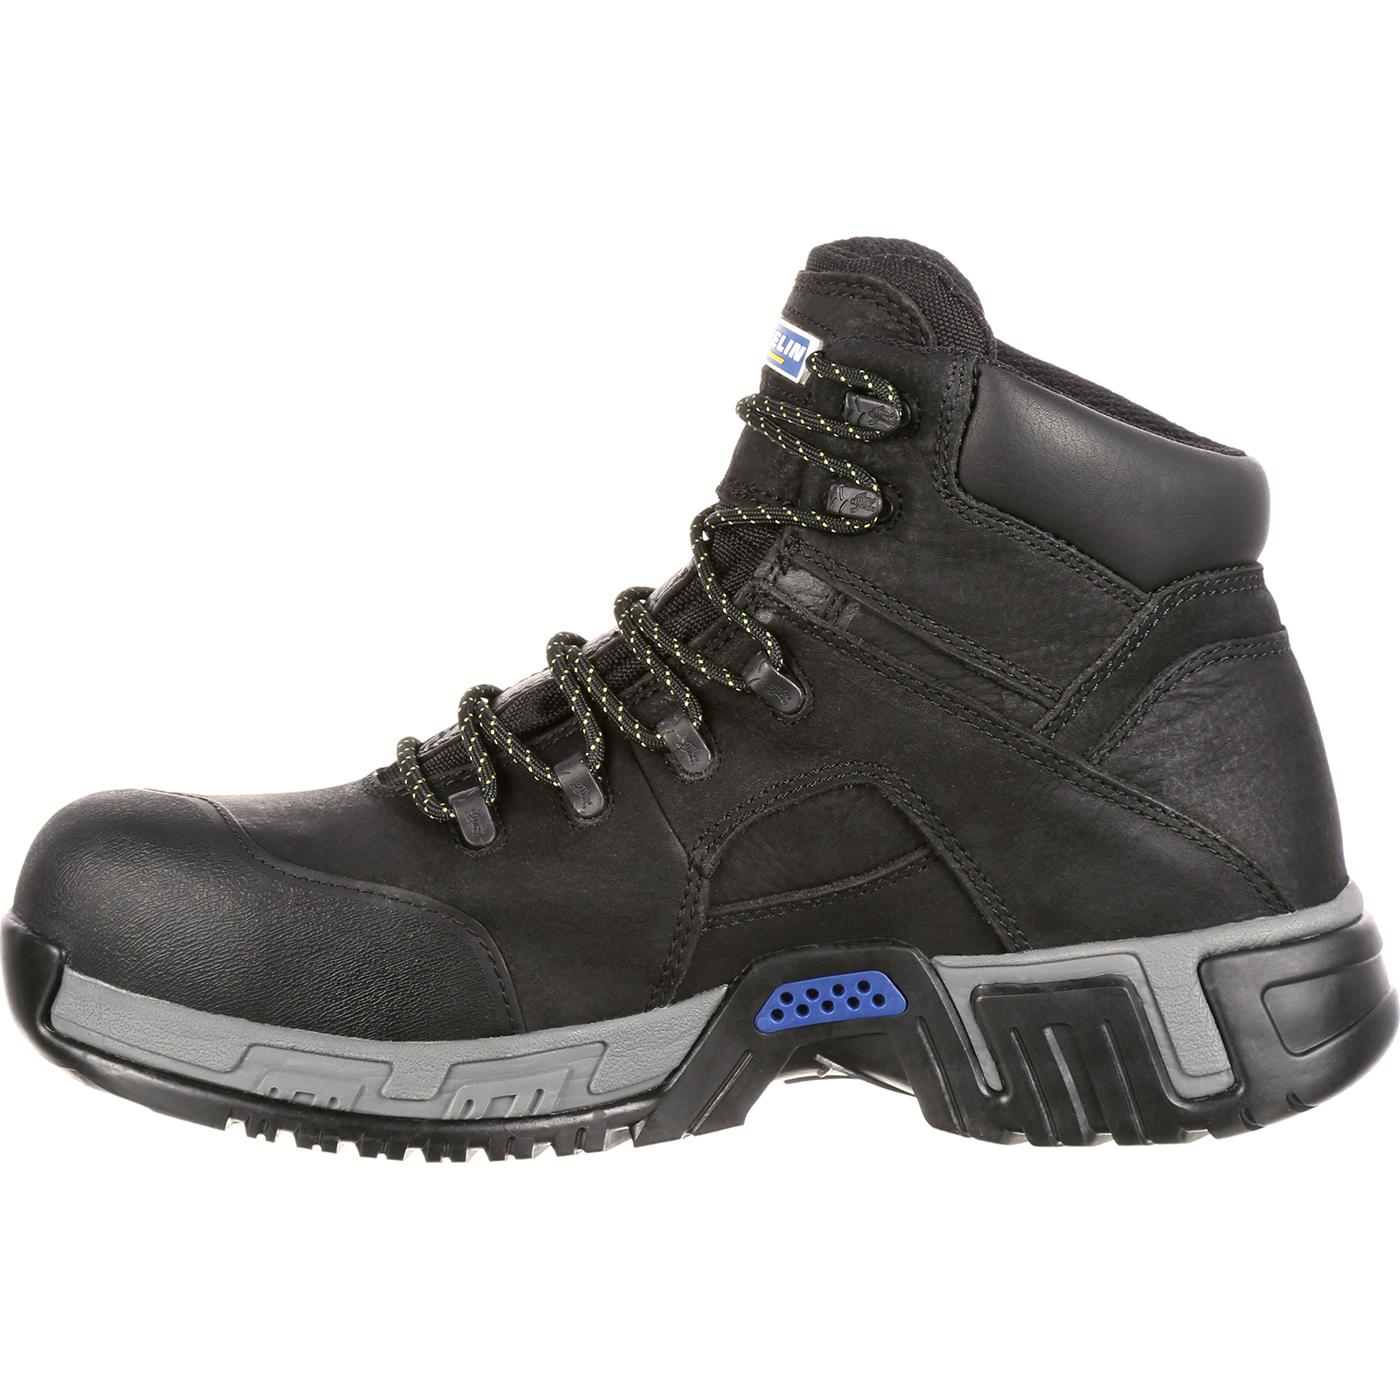 f1a2bd99632 Images. Michelin HydroEdge Steel Toe Puncture-Resistant Waterproof Work Boot  ...